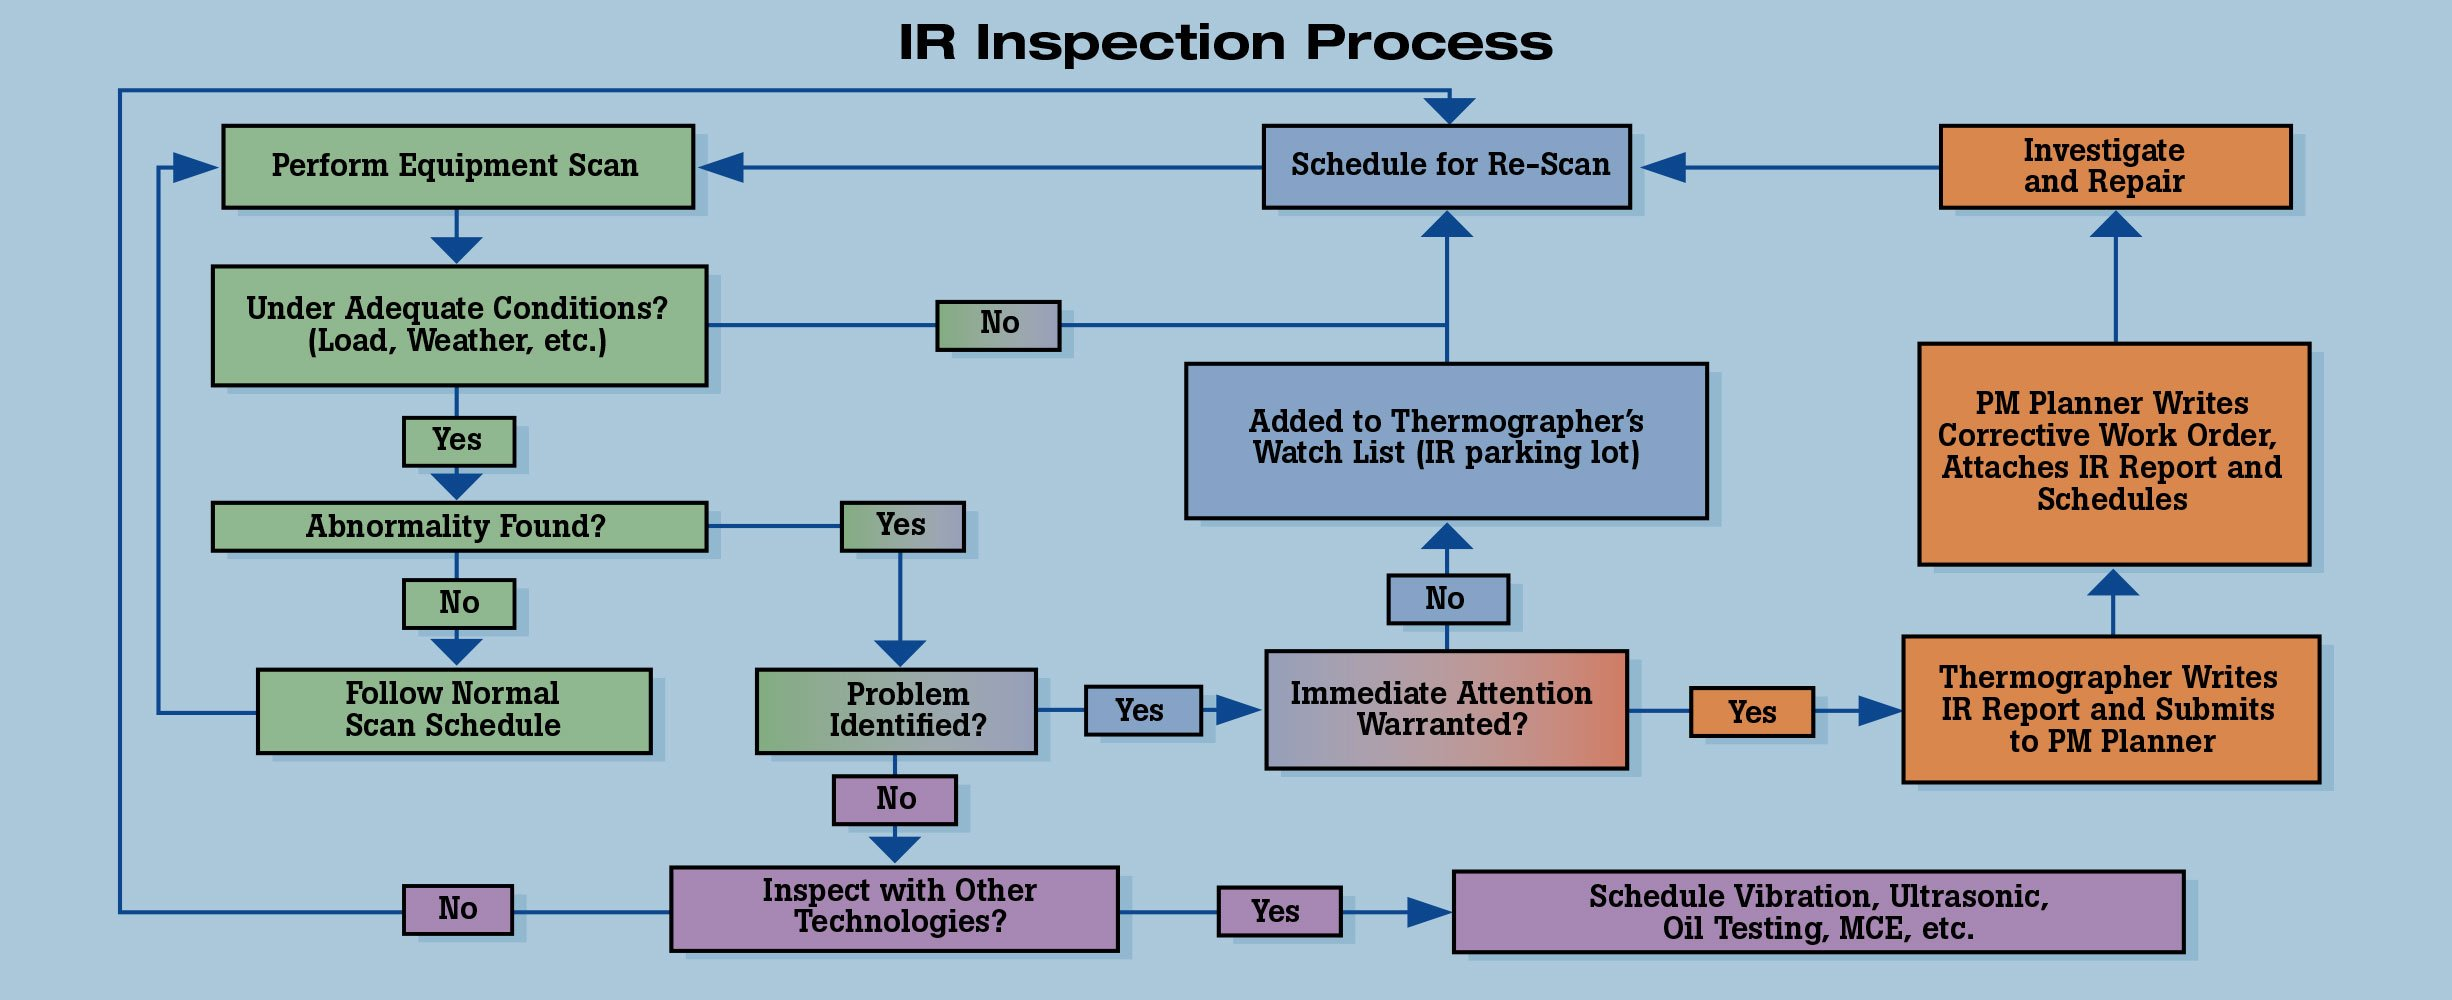 Workflow chart that documents an infrared inspection process